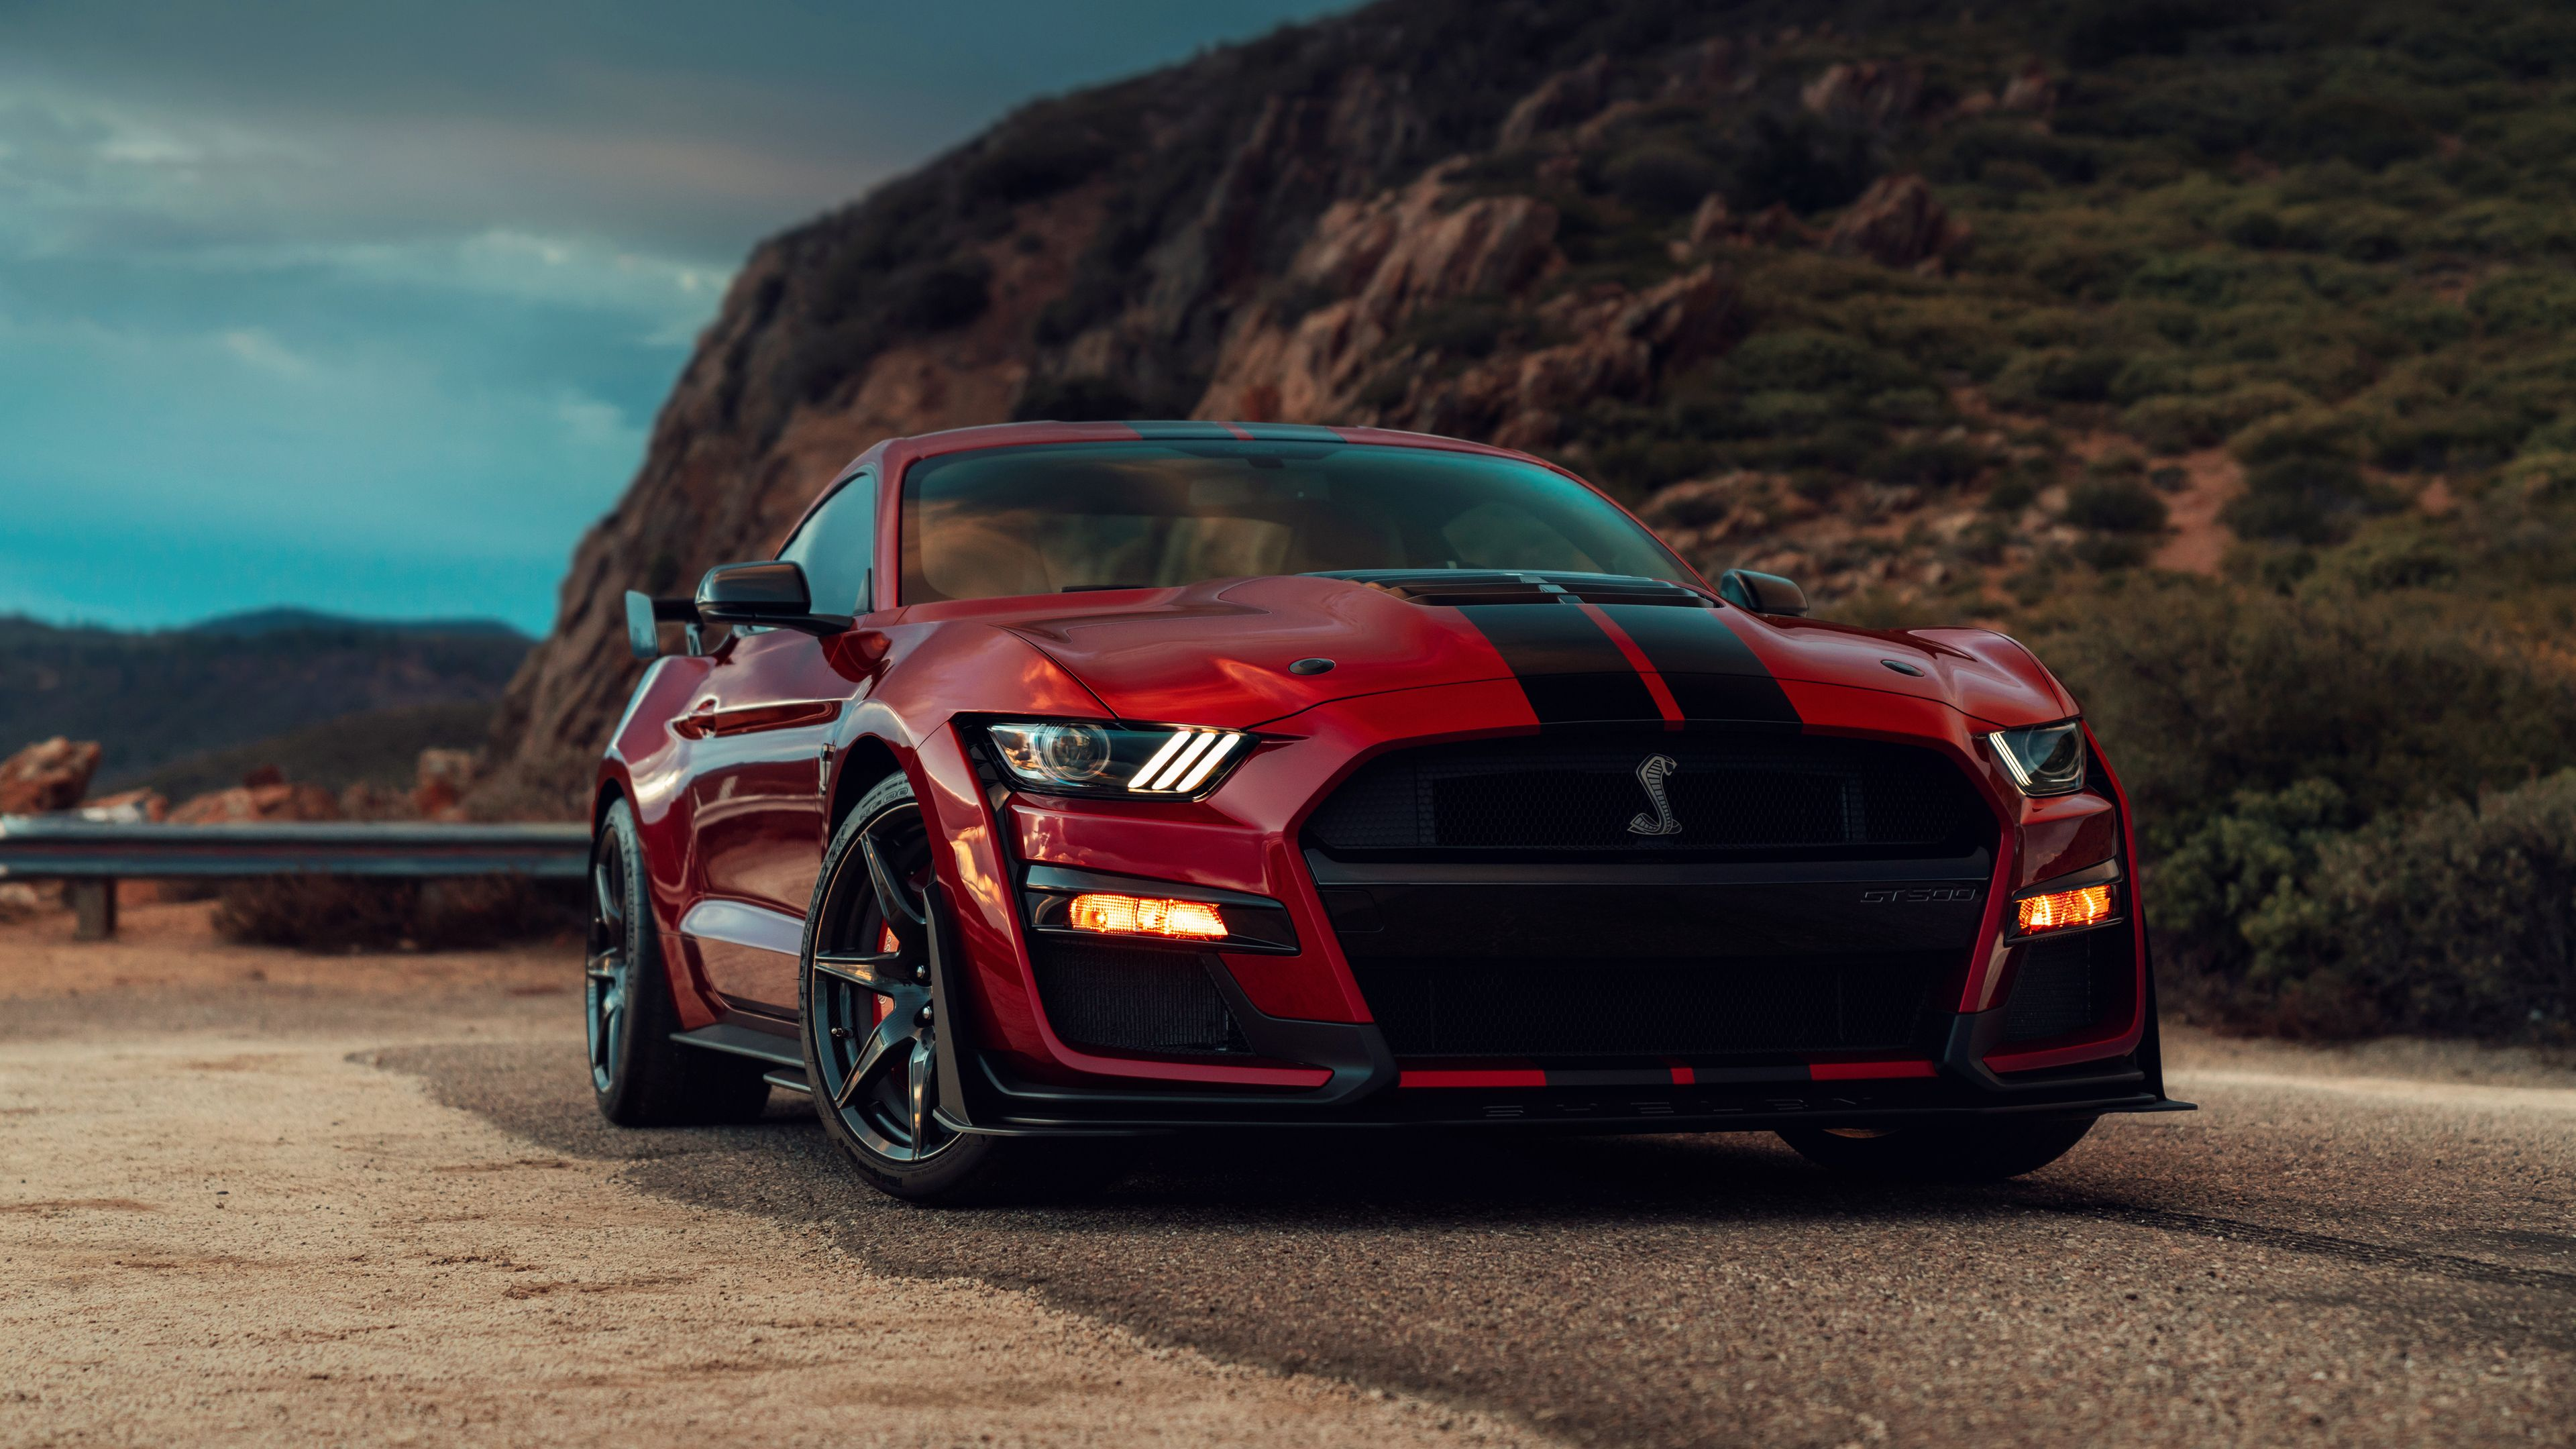 Wallpaper 4k 2020 Ford Mustang Shelby Gt500 4k 2019 Cars Wallpapers 4k Wallpapers Cars Wallpapers Ford Mustang Wallpapers Ford Wallpapers Hd Wallpapers Sh ม สแตง